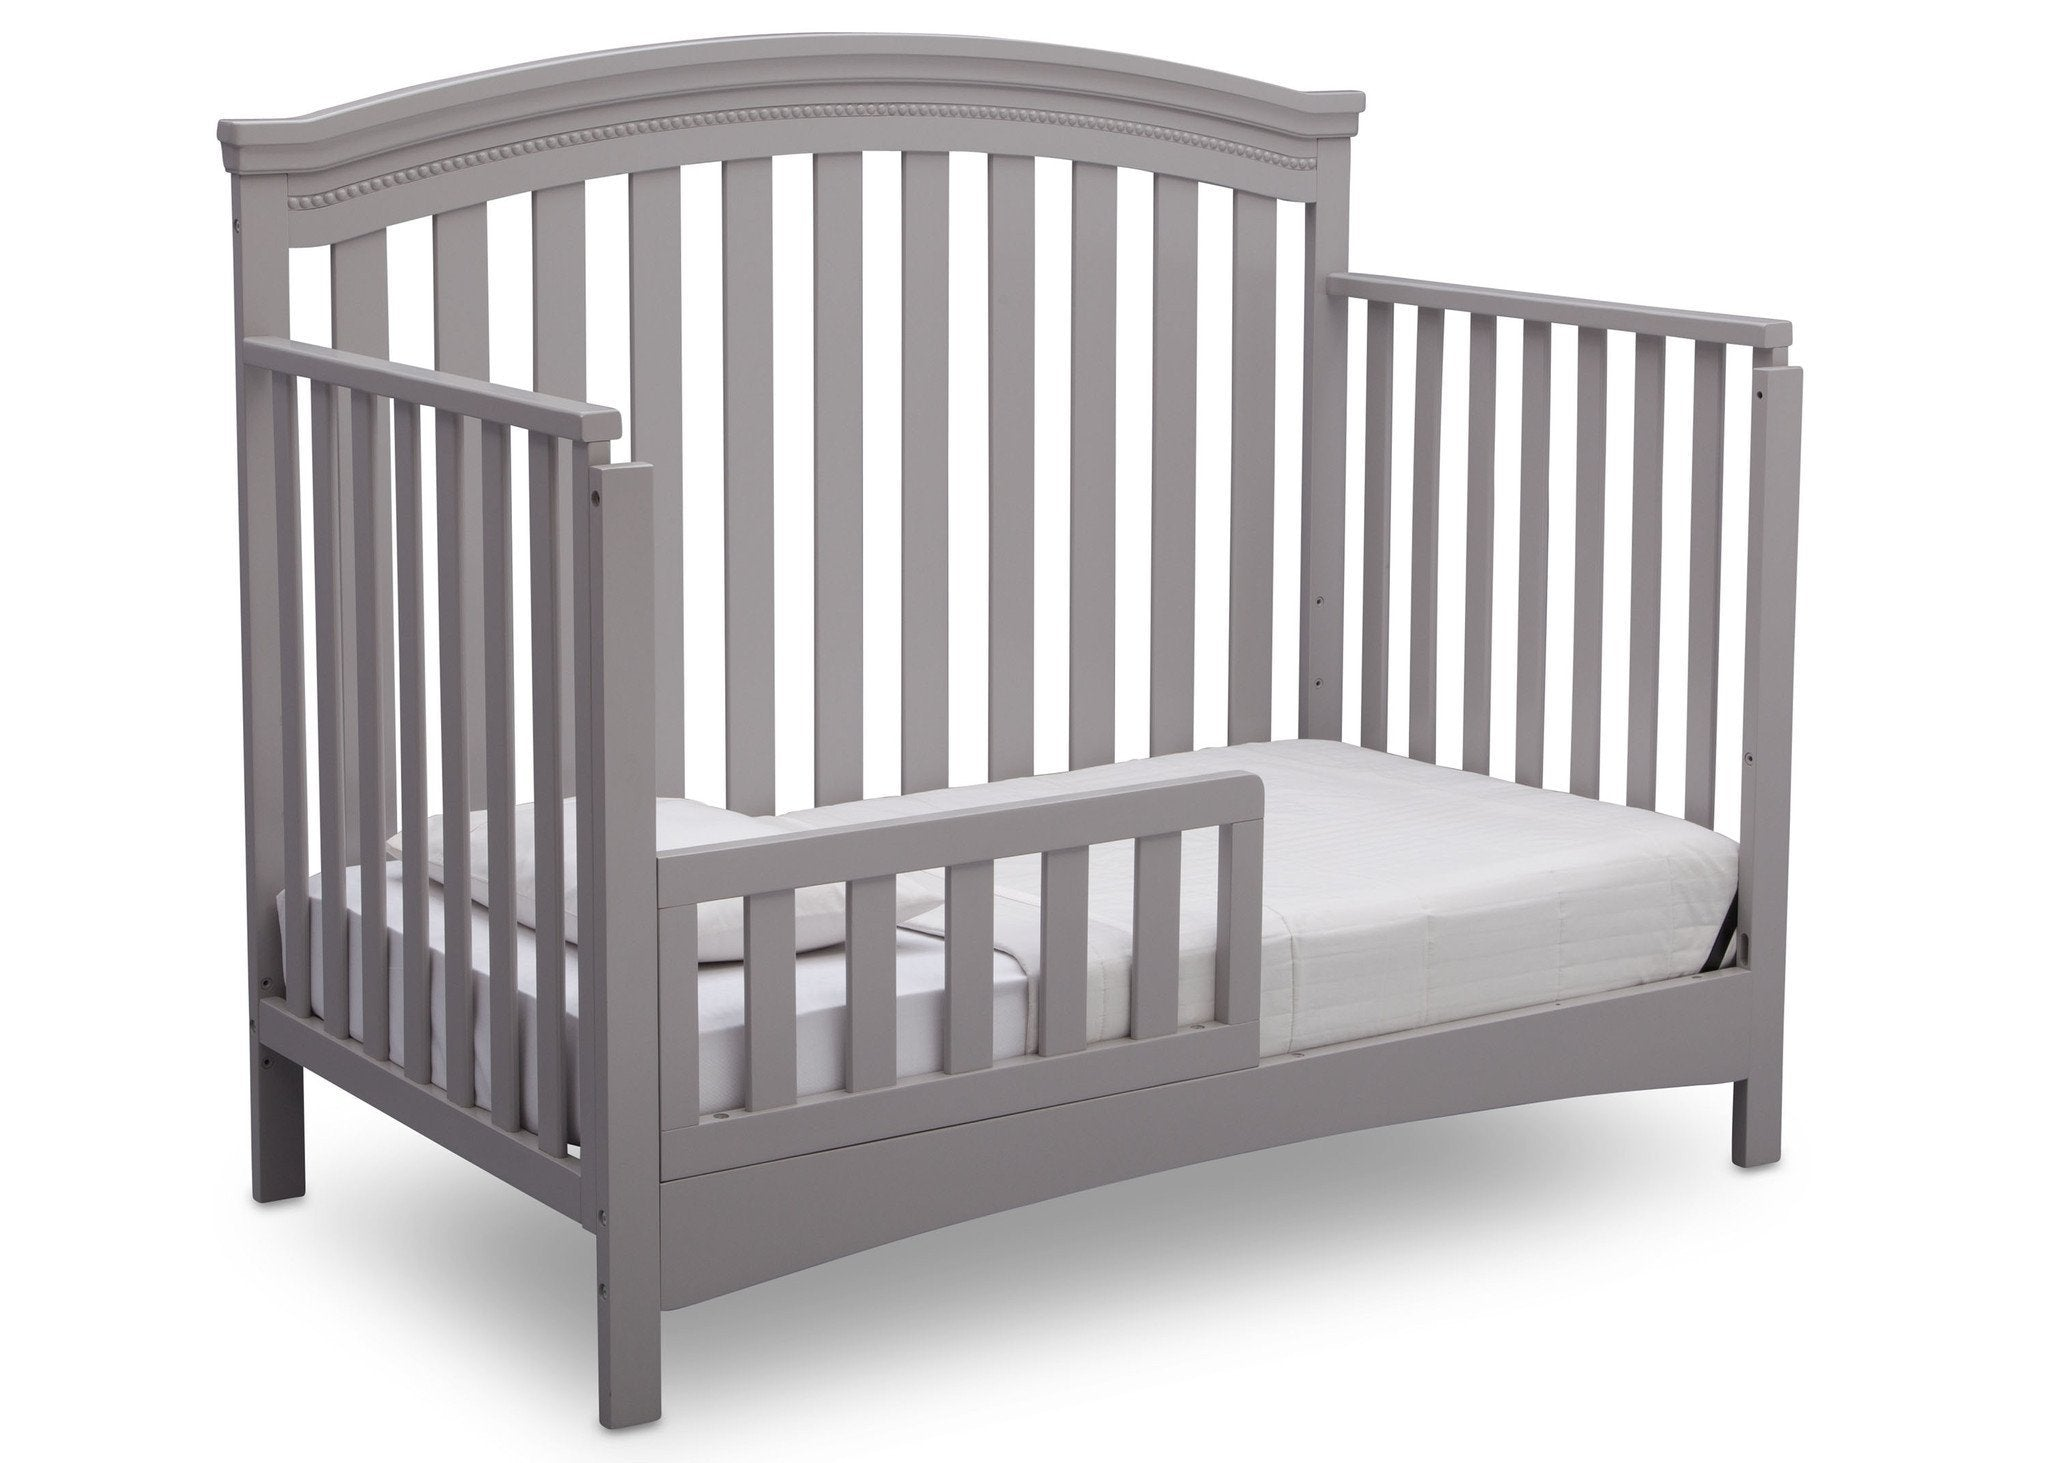 Delta Children Grey (026) Emerson 4-in-1 Crib, Angled Toddler Bed a5a